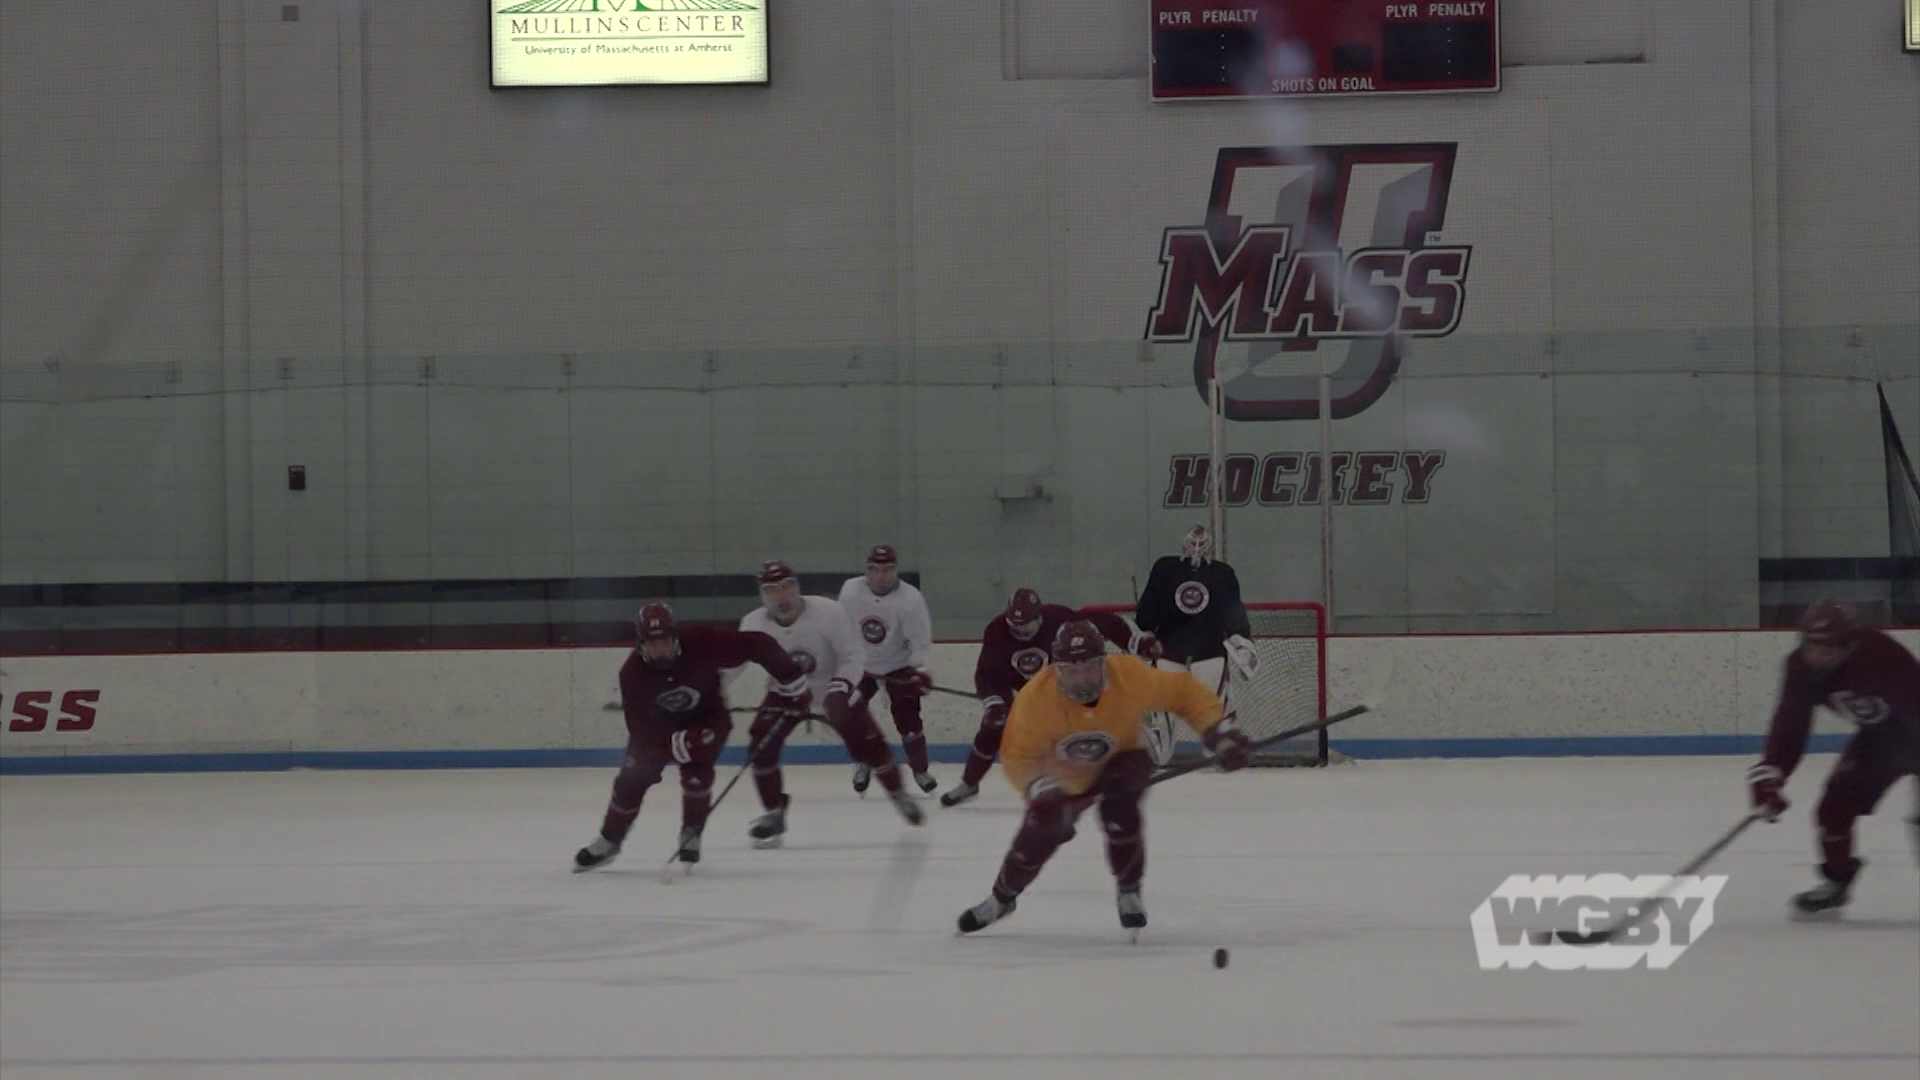 UMass Hockey is headed to the NCAA Frozen Four, and the Minutemen's successful season has inspired a new generation of hockey players.